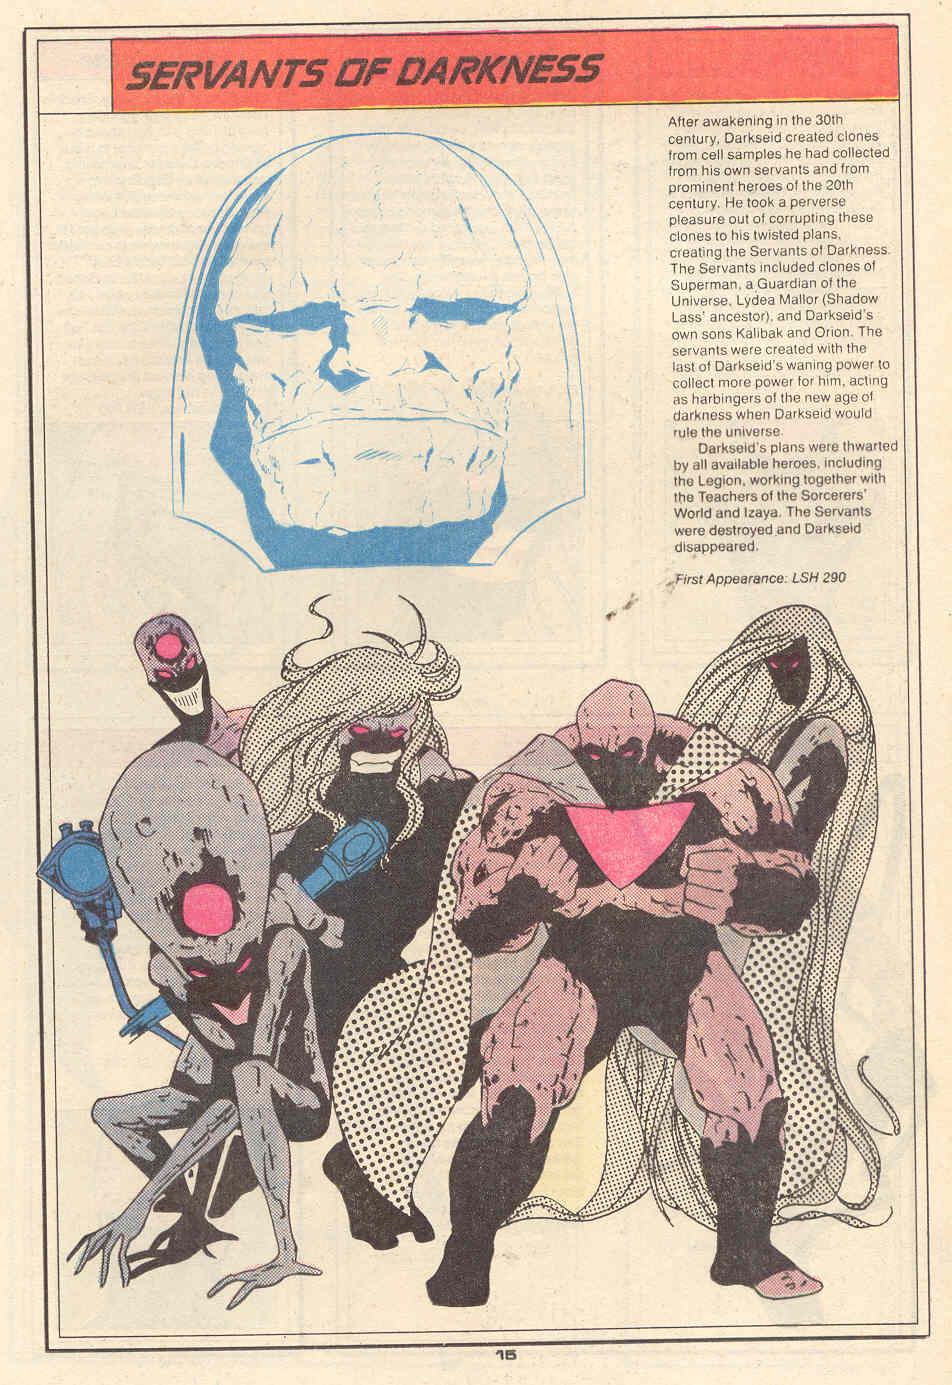 Servants of Darkness by Keith Giffen and Bob Smith - Who's Who in the Legion of Super-Heroes #6